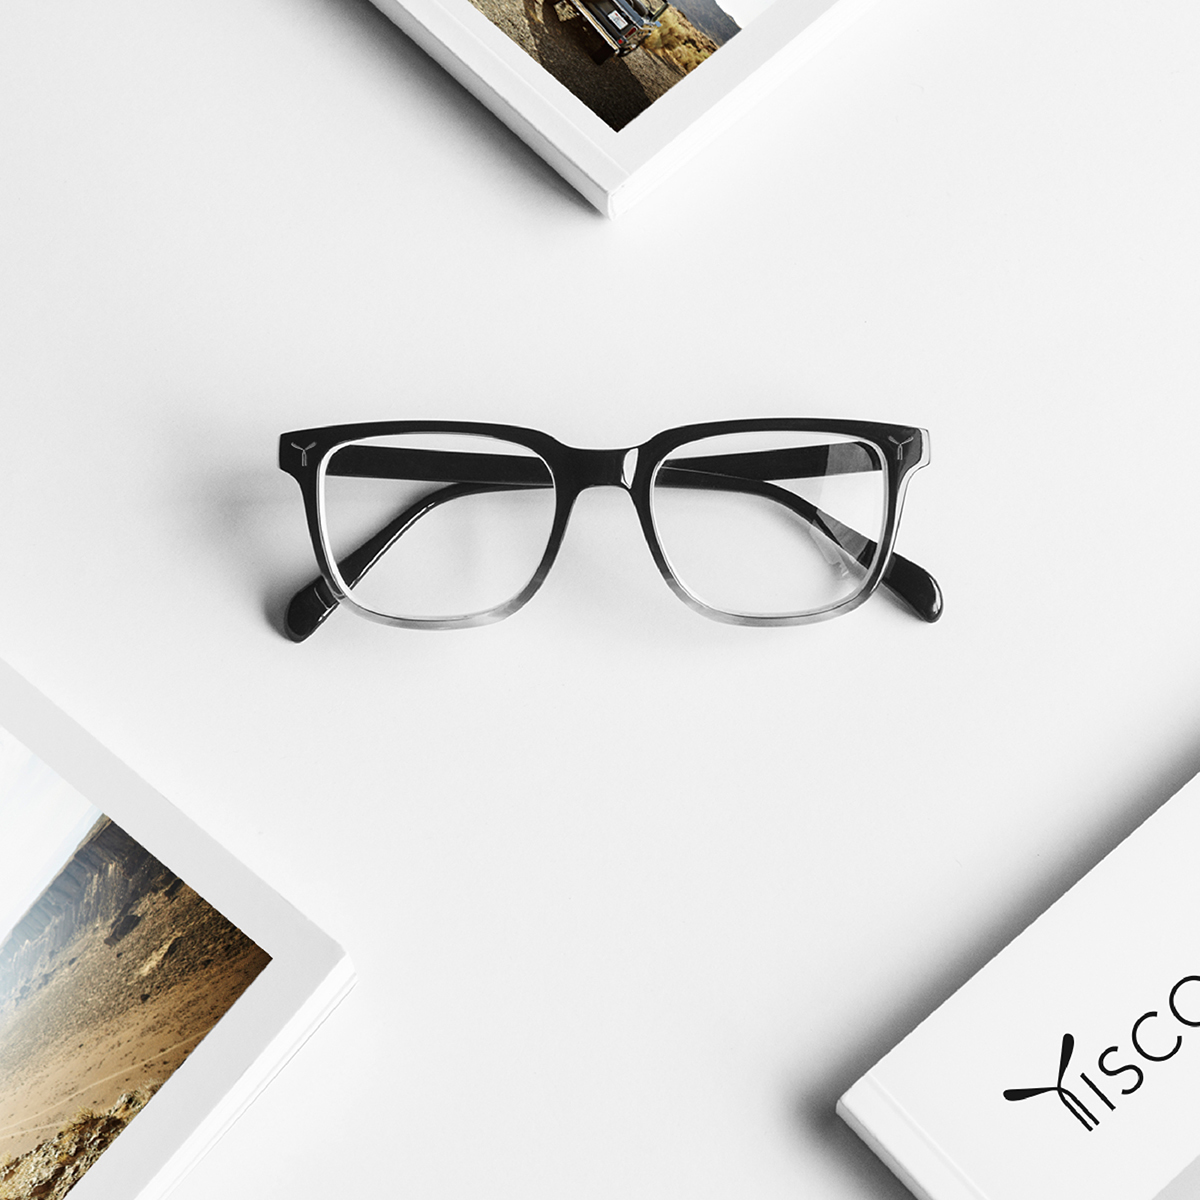 Tiscover titanium frames eyewear surrounded by product catalogue